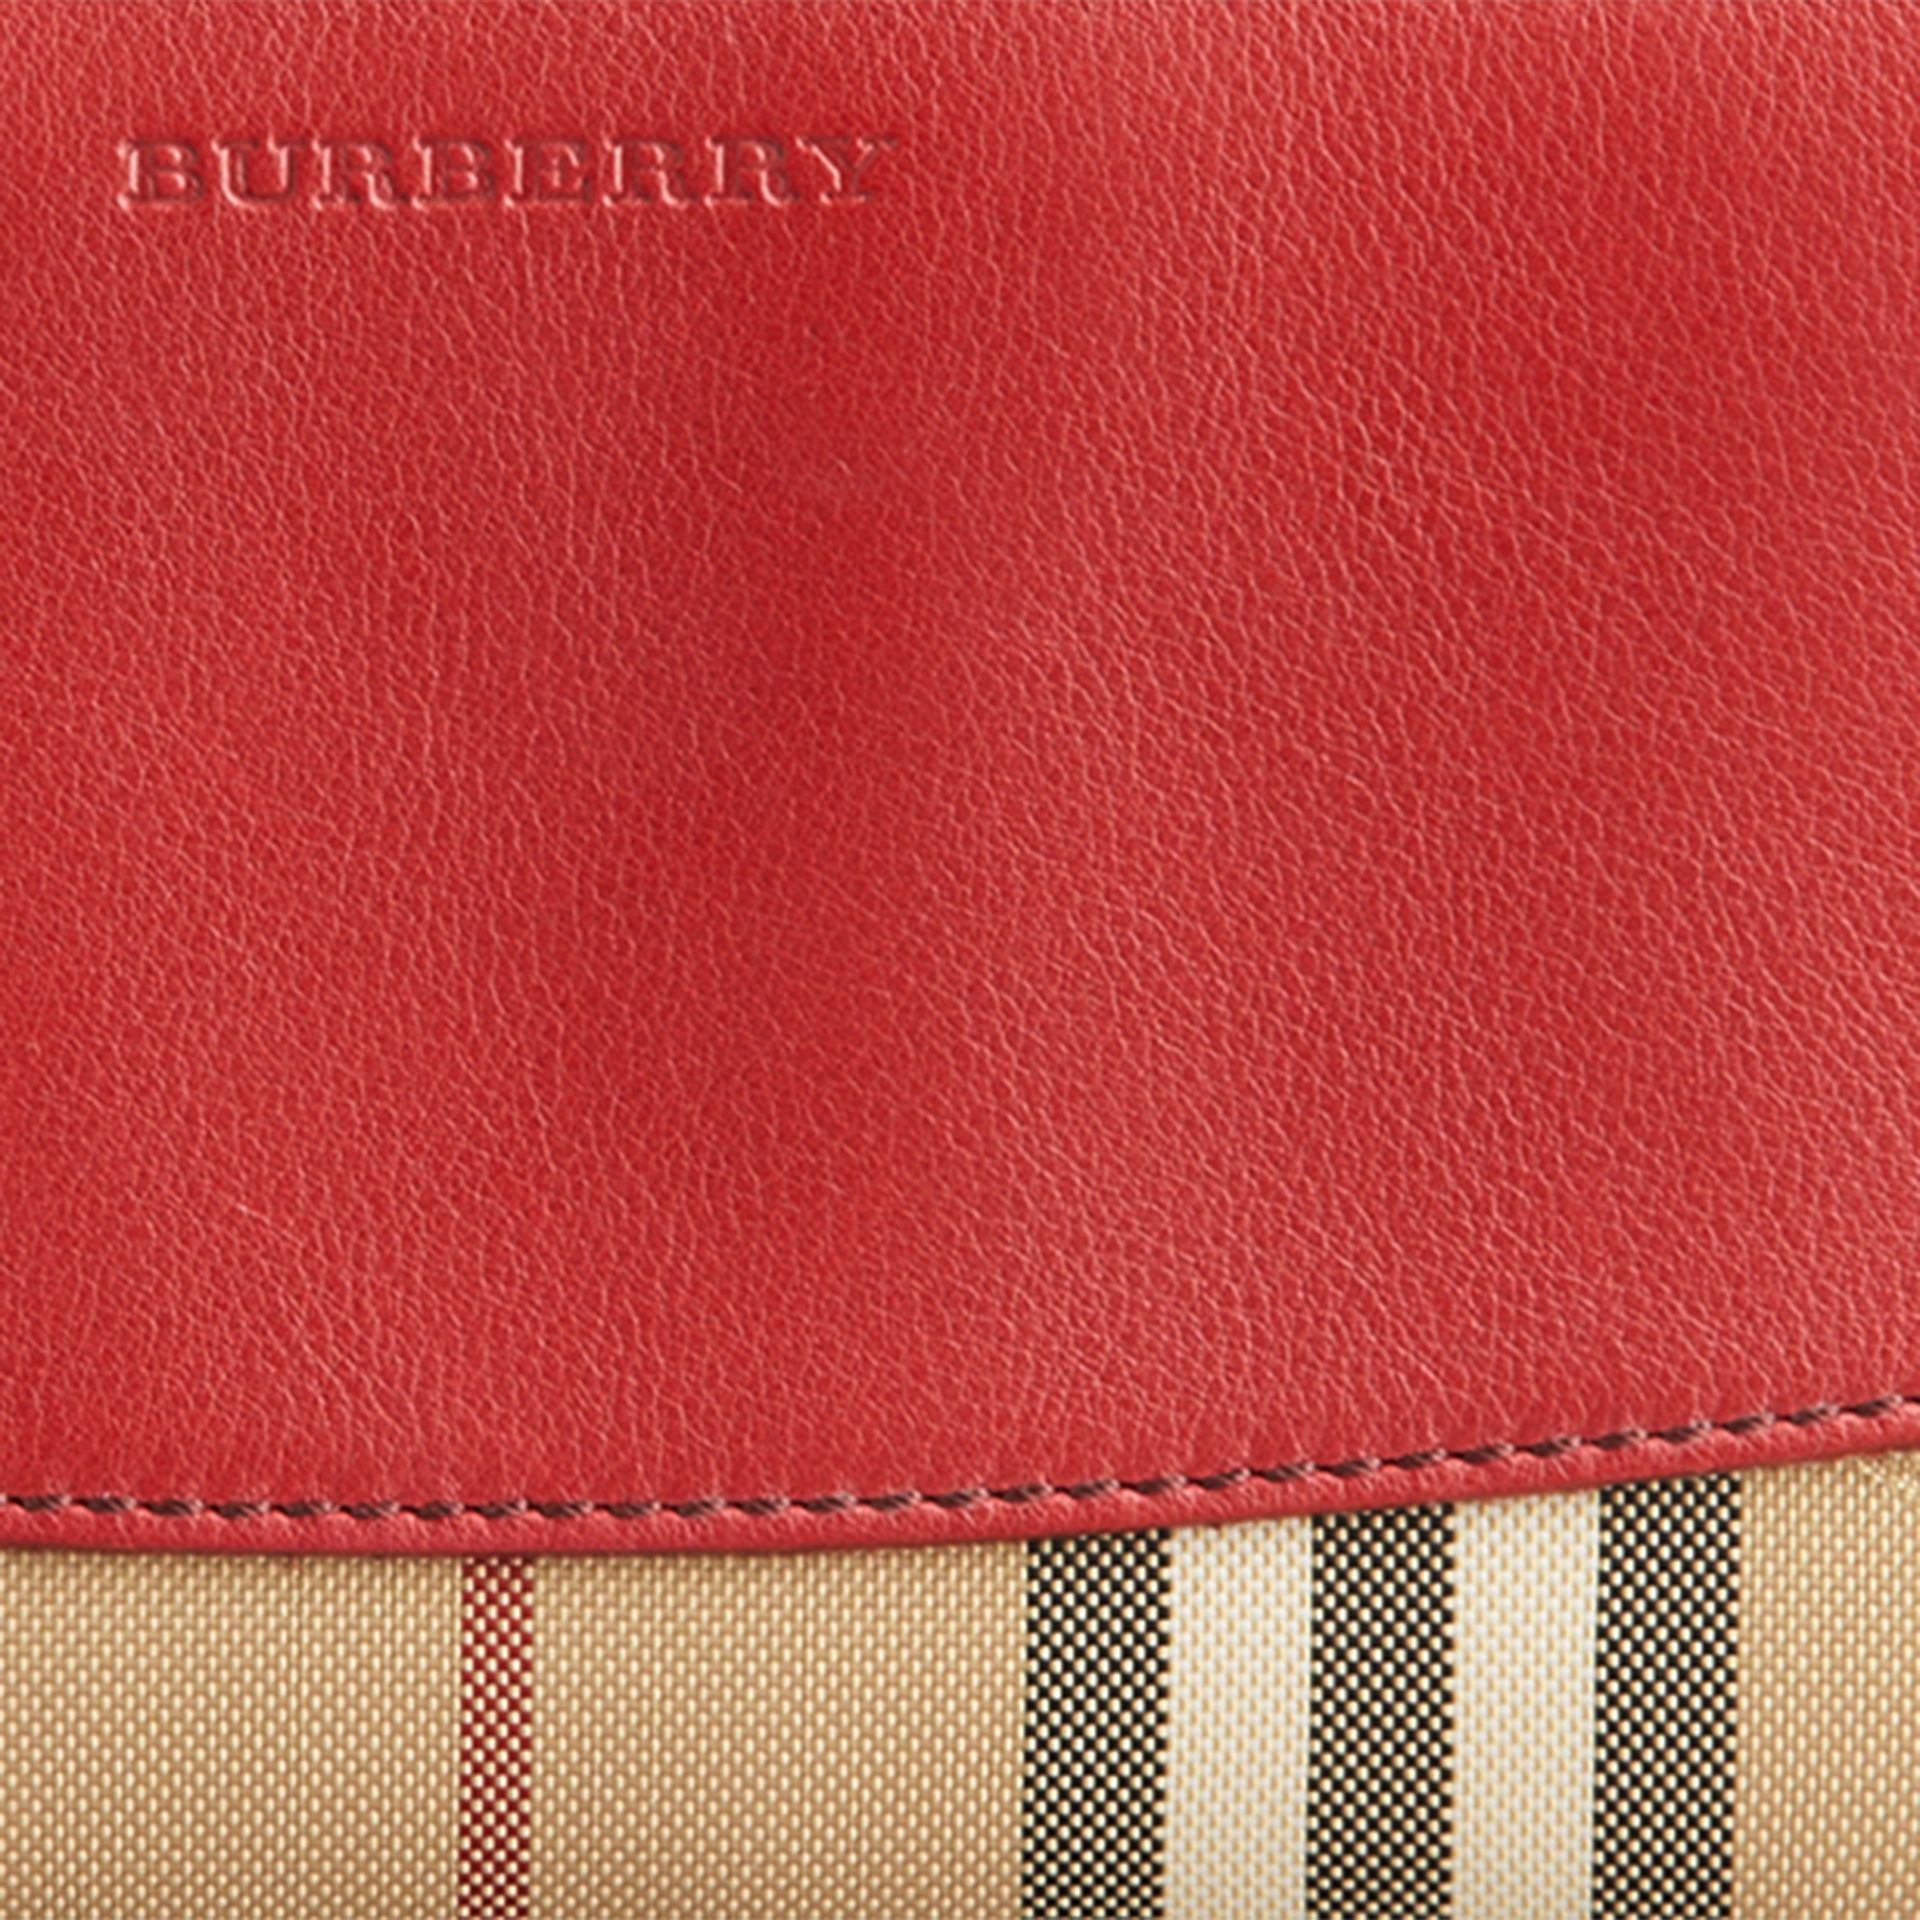 Horseferry Check and Leather Ziparound Wallet in Parade Red - Women | Burberry - gallery image 2